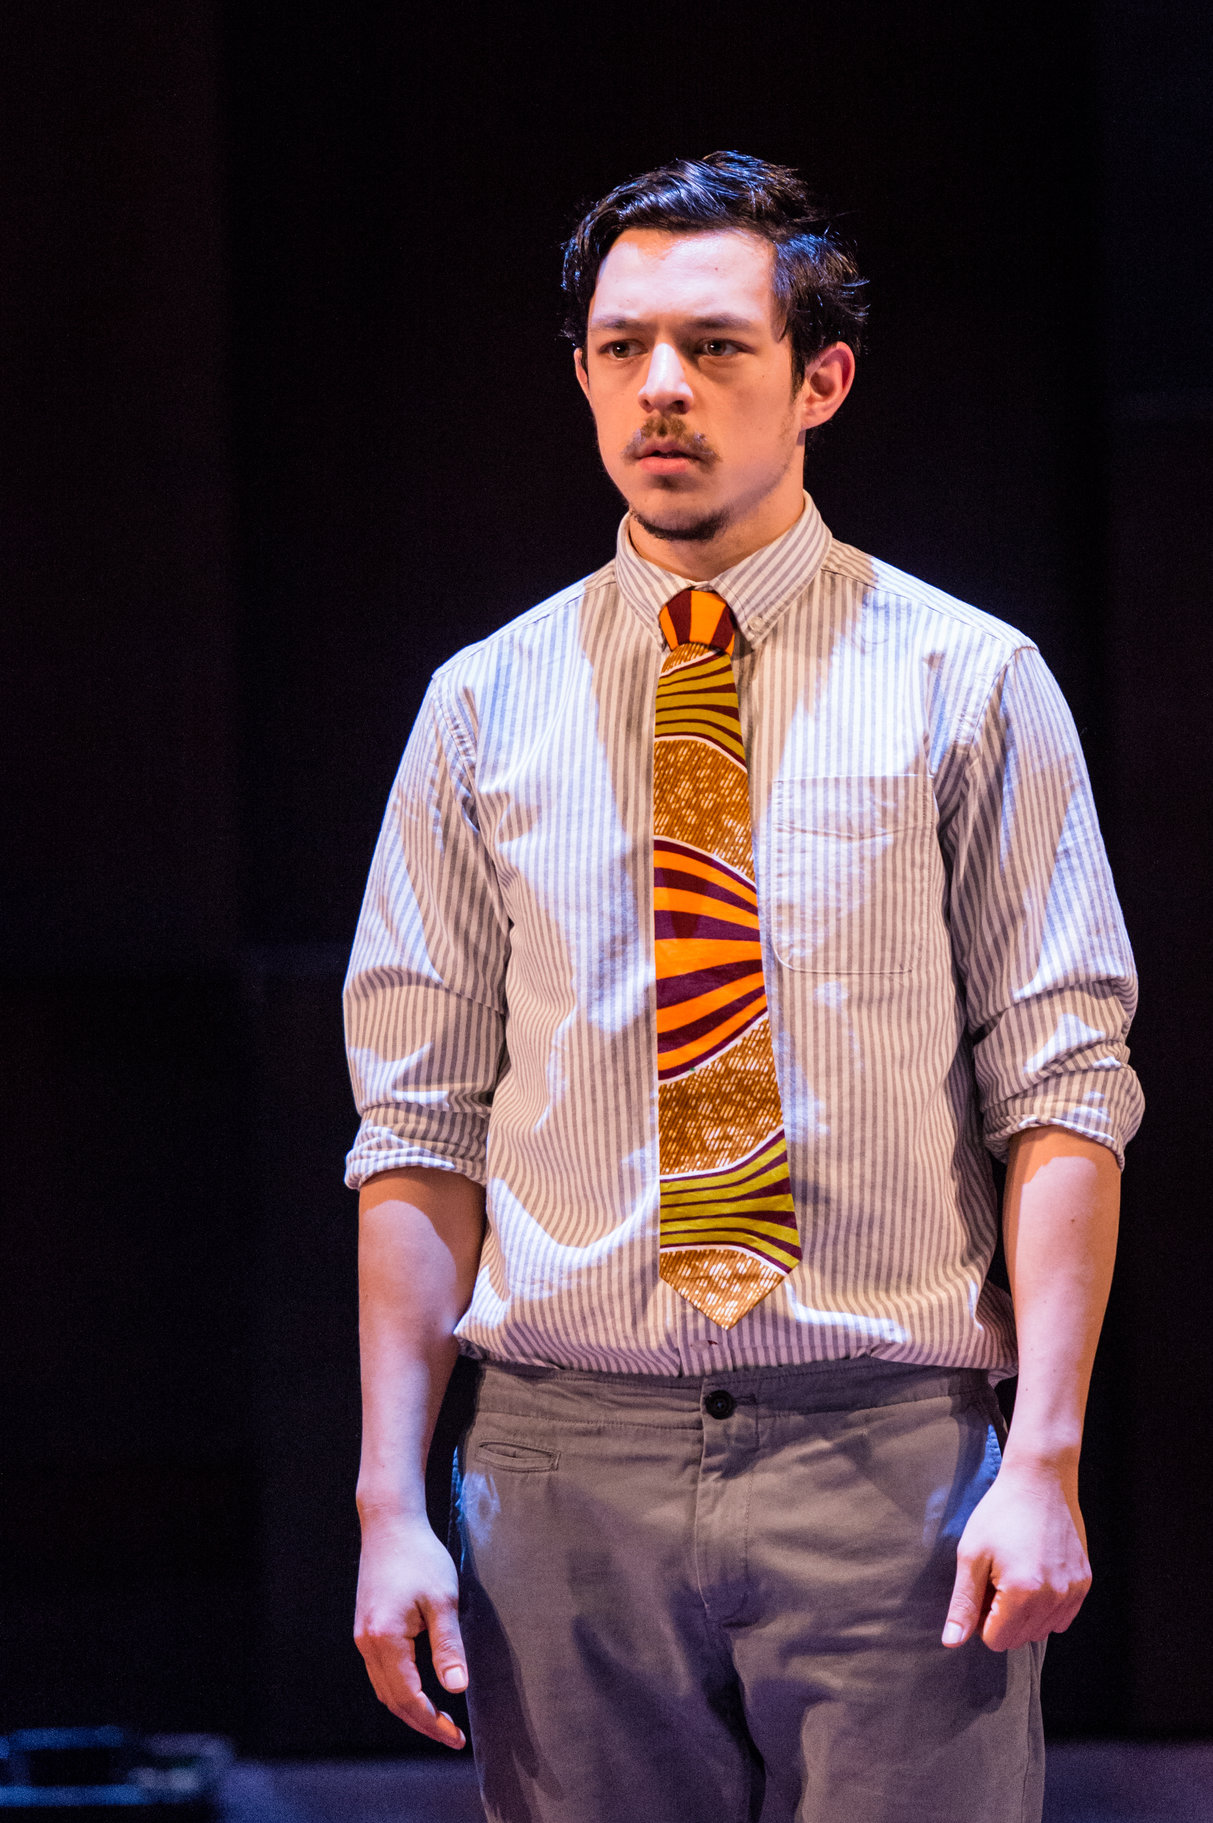 Rosencrantz in a shirt and tie.